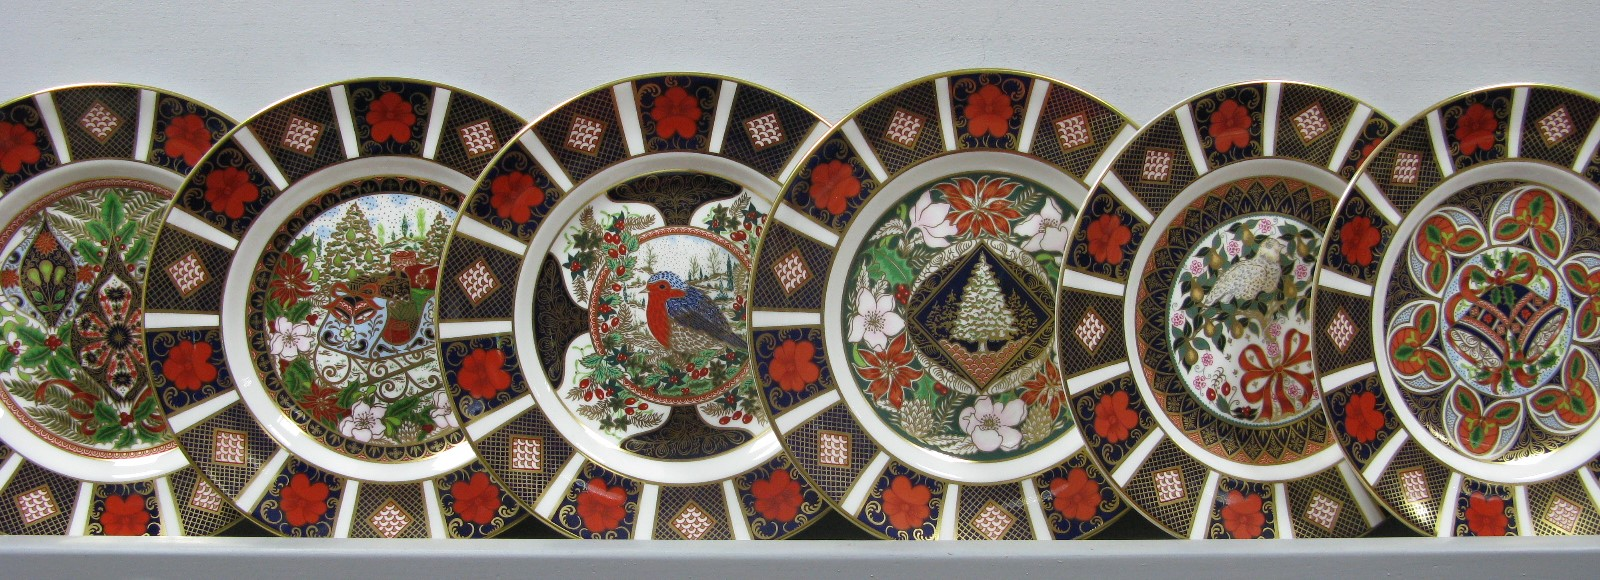 Lot 1041 - Six Royal Crown Derby Limited Edition Christmas Cabinet Collectors Plates, 1991 - 96 inclusive (